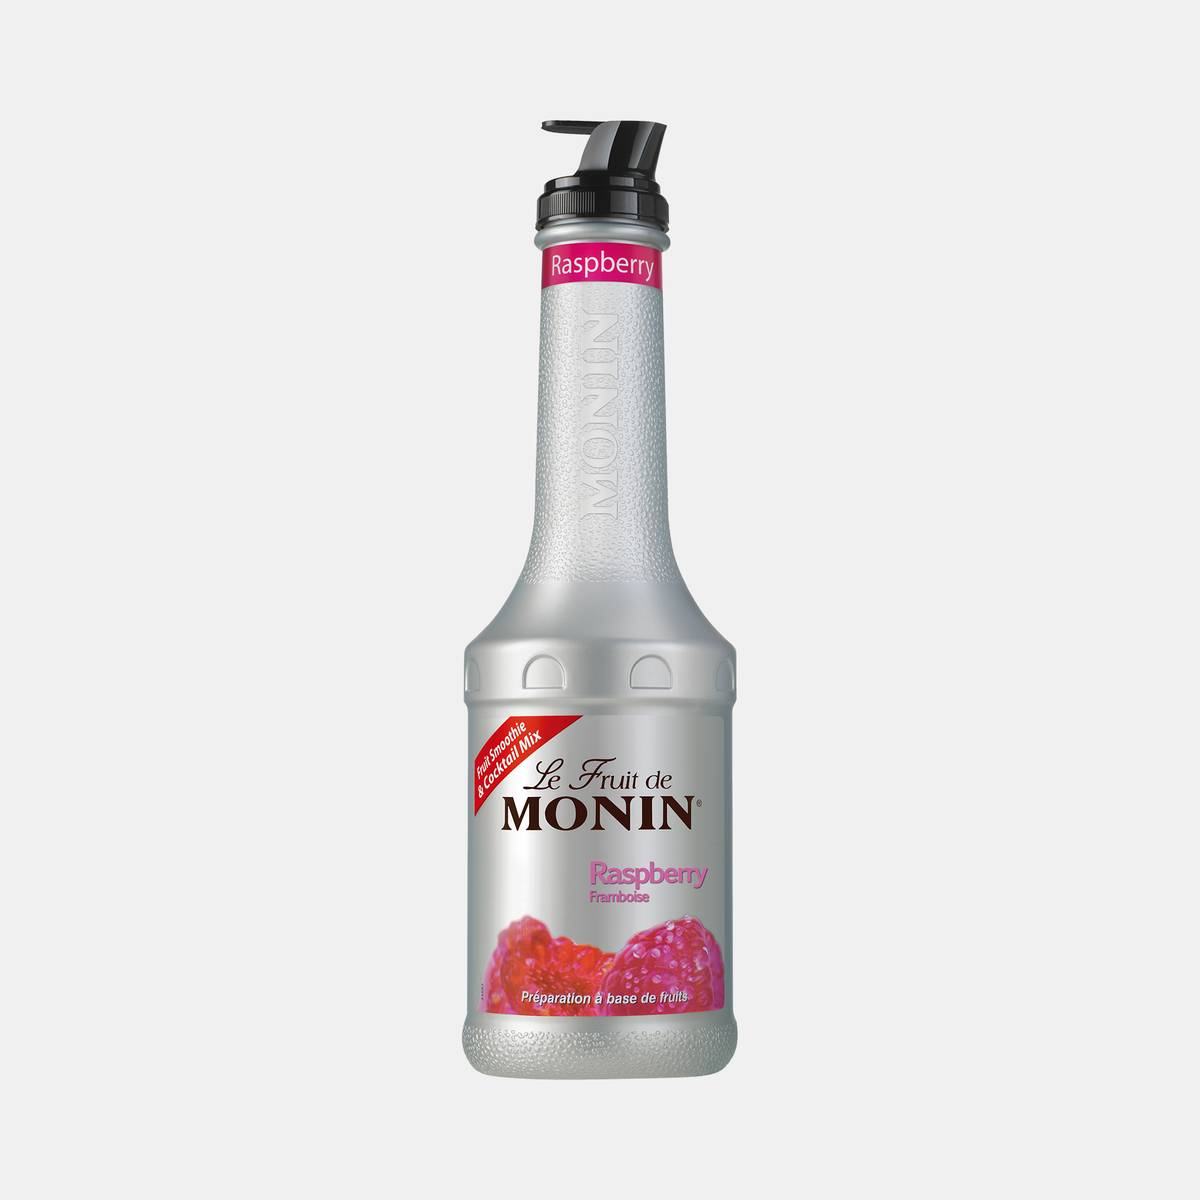 Monin Raspberry Puree Fruit Mix 1 Liter Bottle